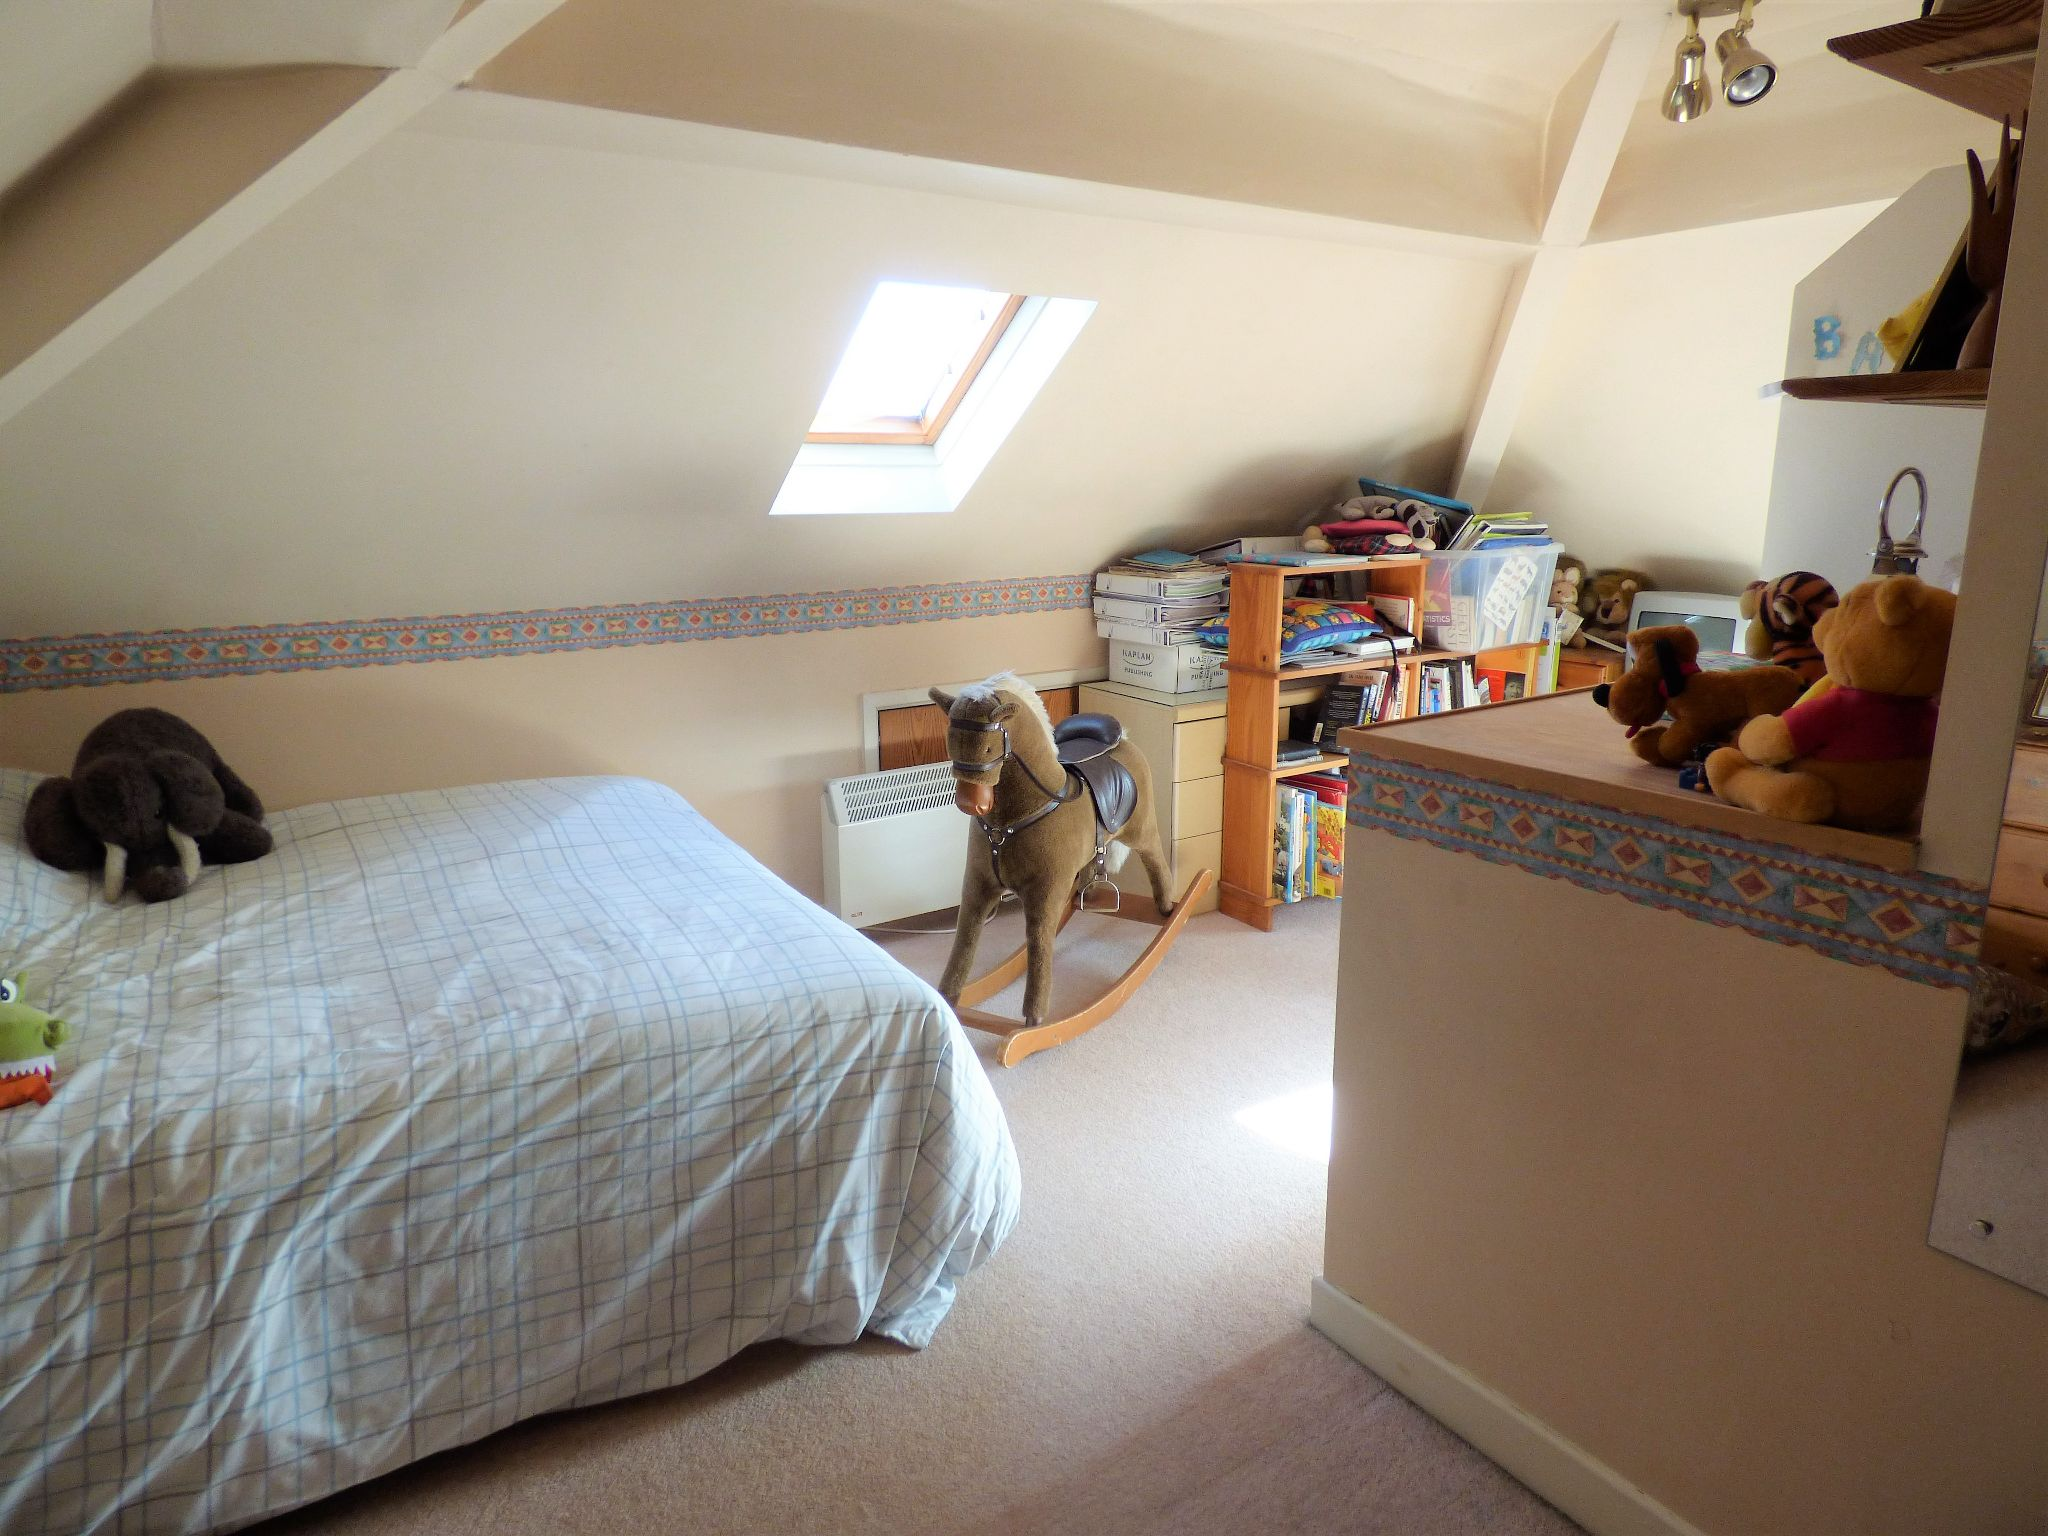 4 Bedroom Semi-detached House For Sale - Photograph 13